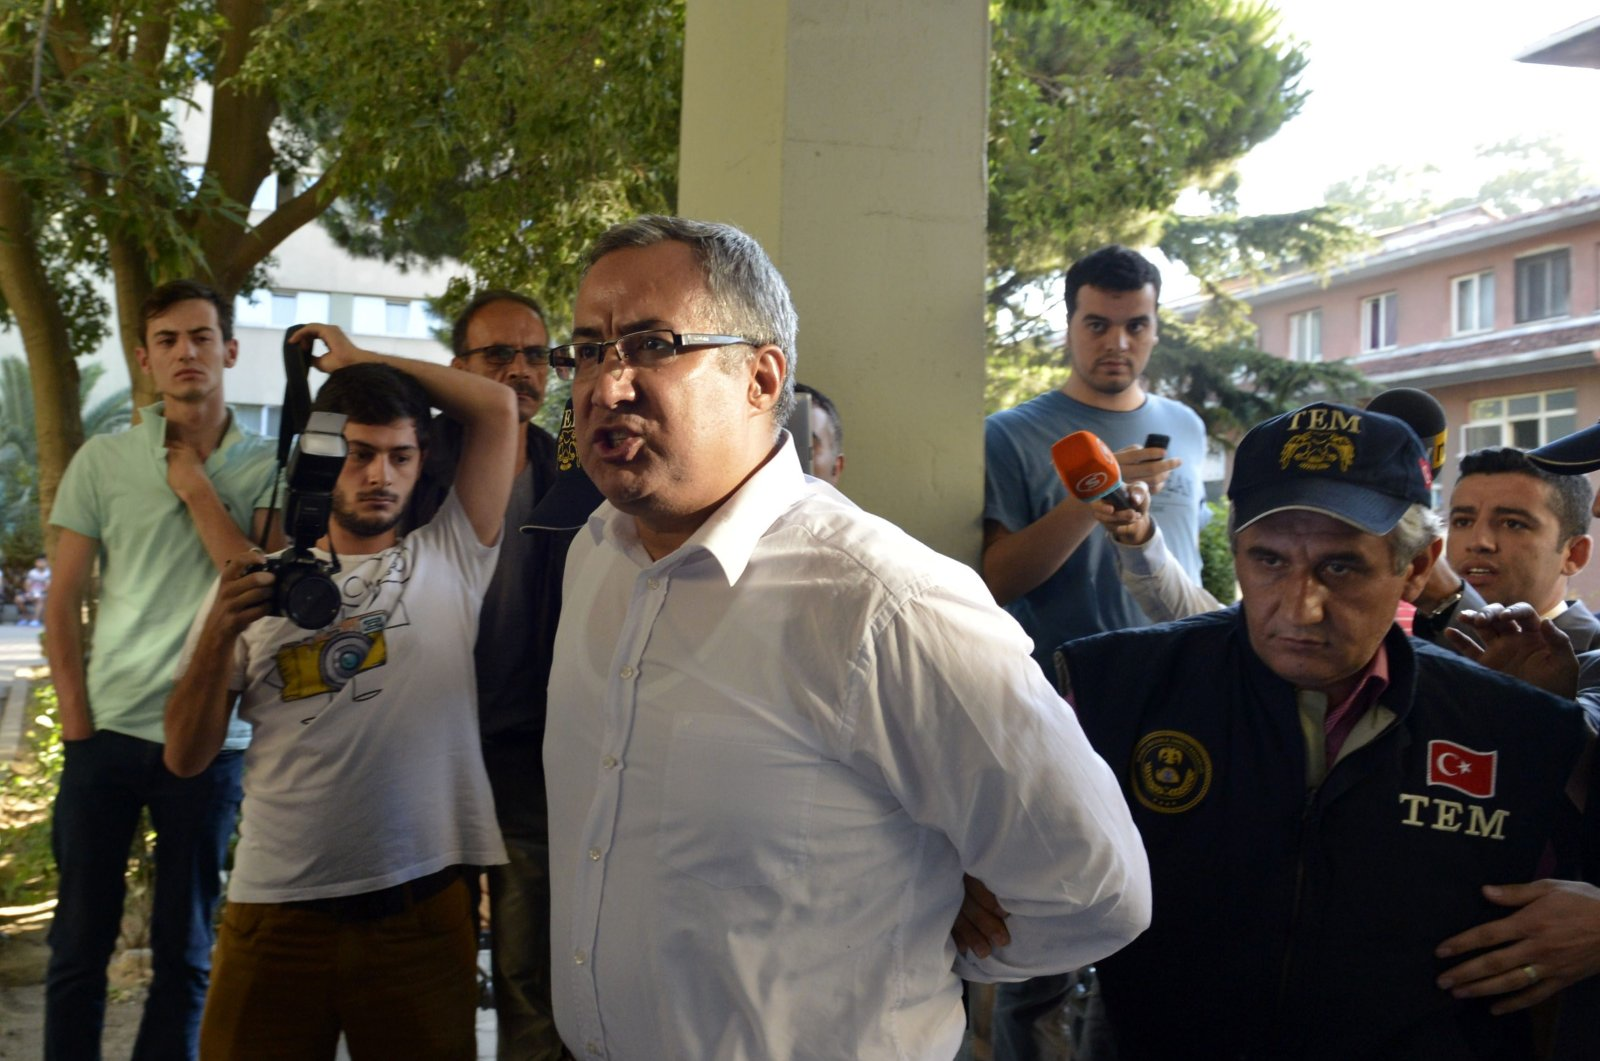 Police officers escort police chief Yurt Atayün, a defendant in Selam Tevhid case, to the courthouse after his arrest in Istanbul, Turkey, Jul. 30, 2014. (AA PHOTO)